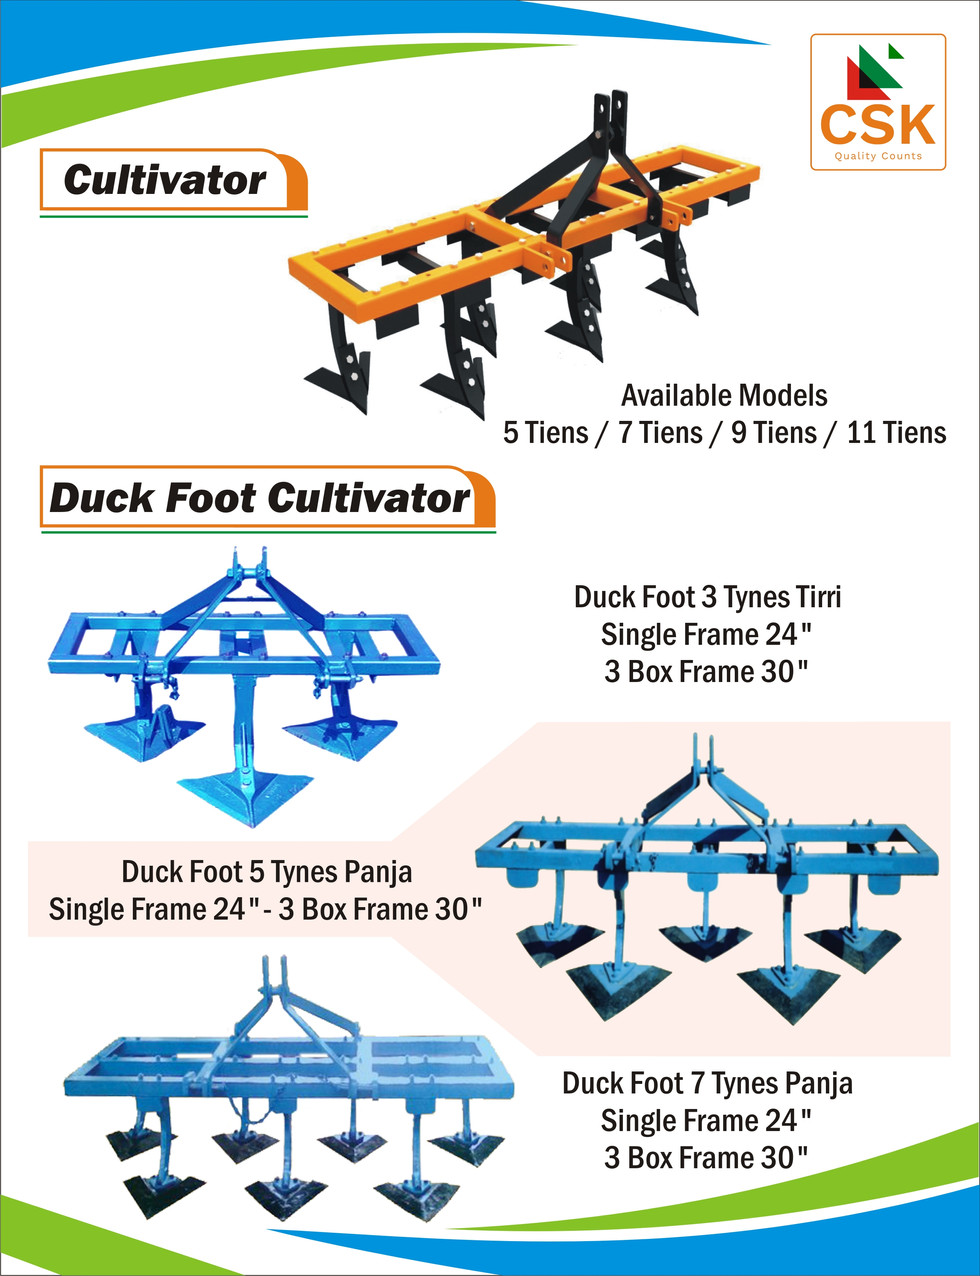 Cultivator-Best for Secondary Tillage